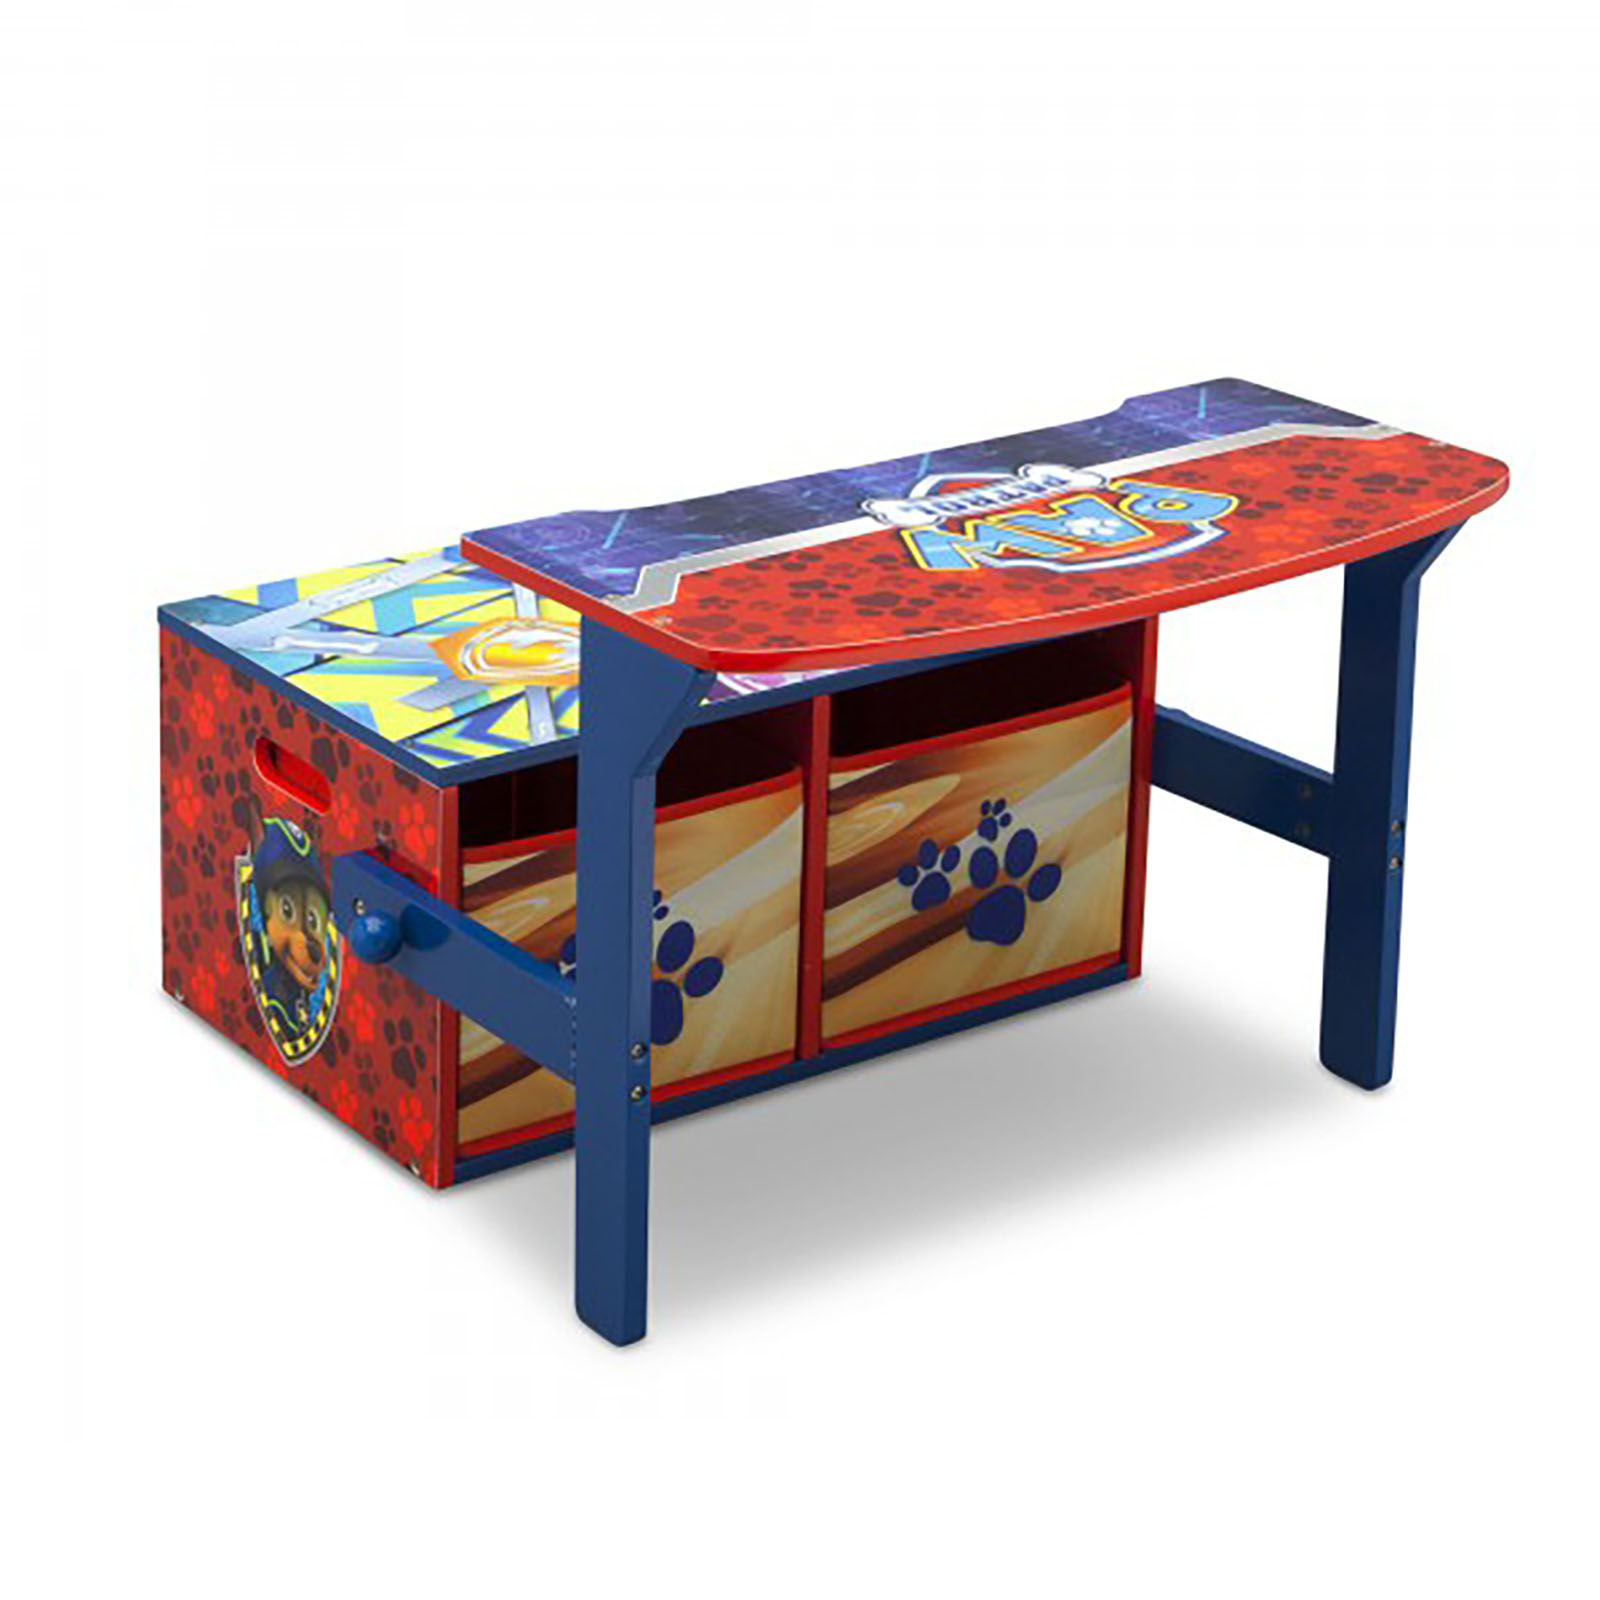 Paw Patrol Kids Toy Organizer Bin Children S Storage Box: NEW DELTA CHILDREN PAW PATROL CONVERTIBLE BENCH / DESK